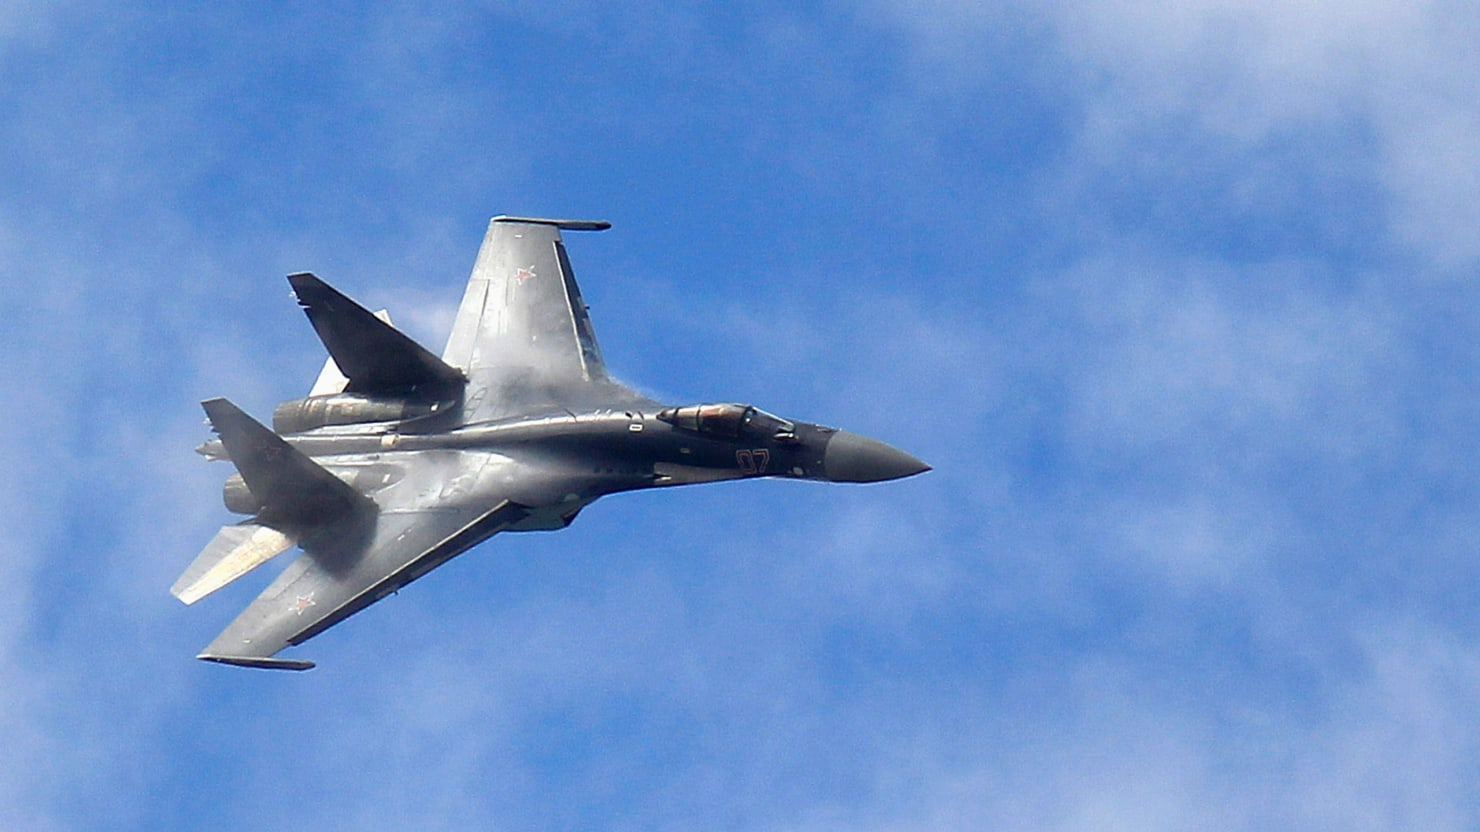 Pentagon Worries That Russia Can Now Outshoot U.S. Stealth Jets